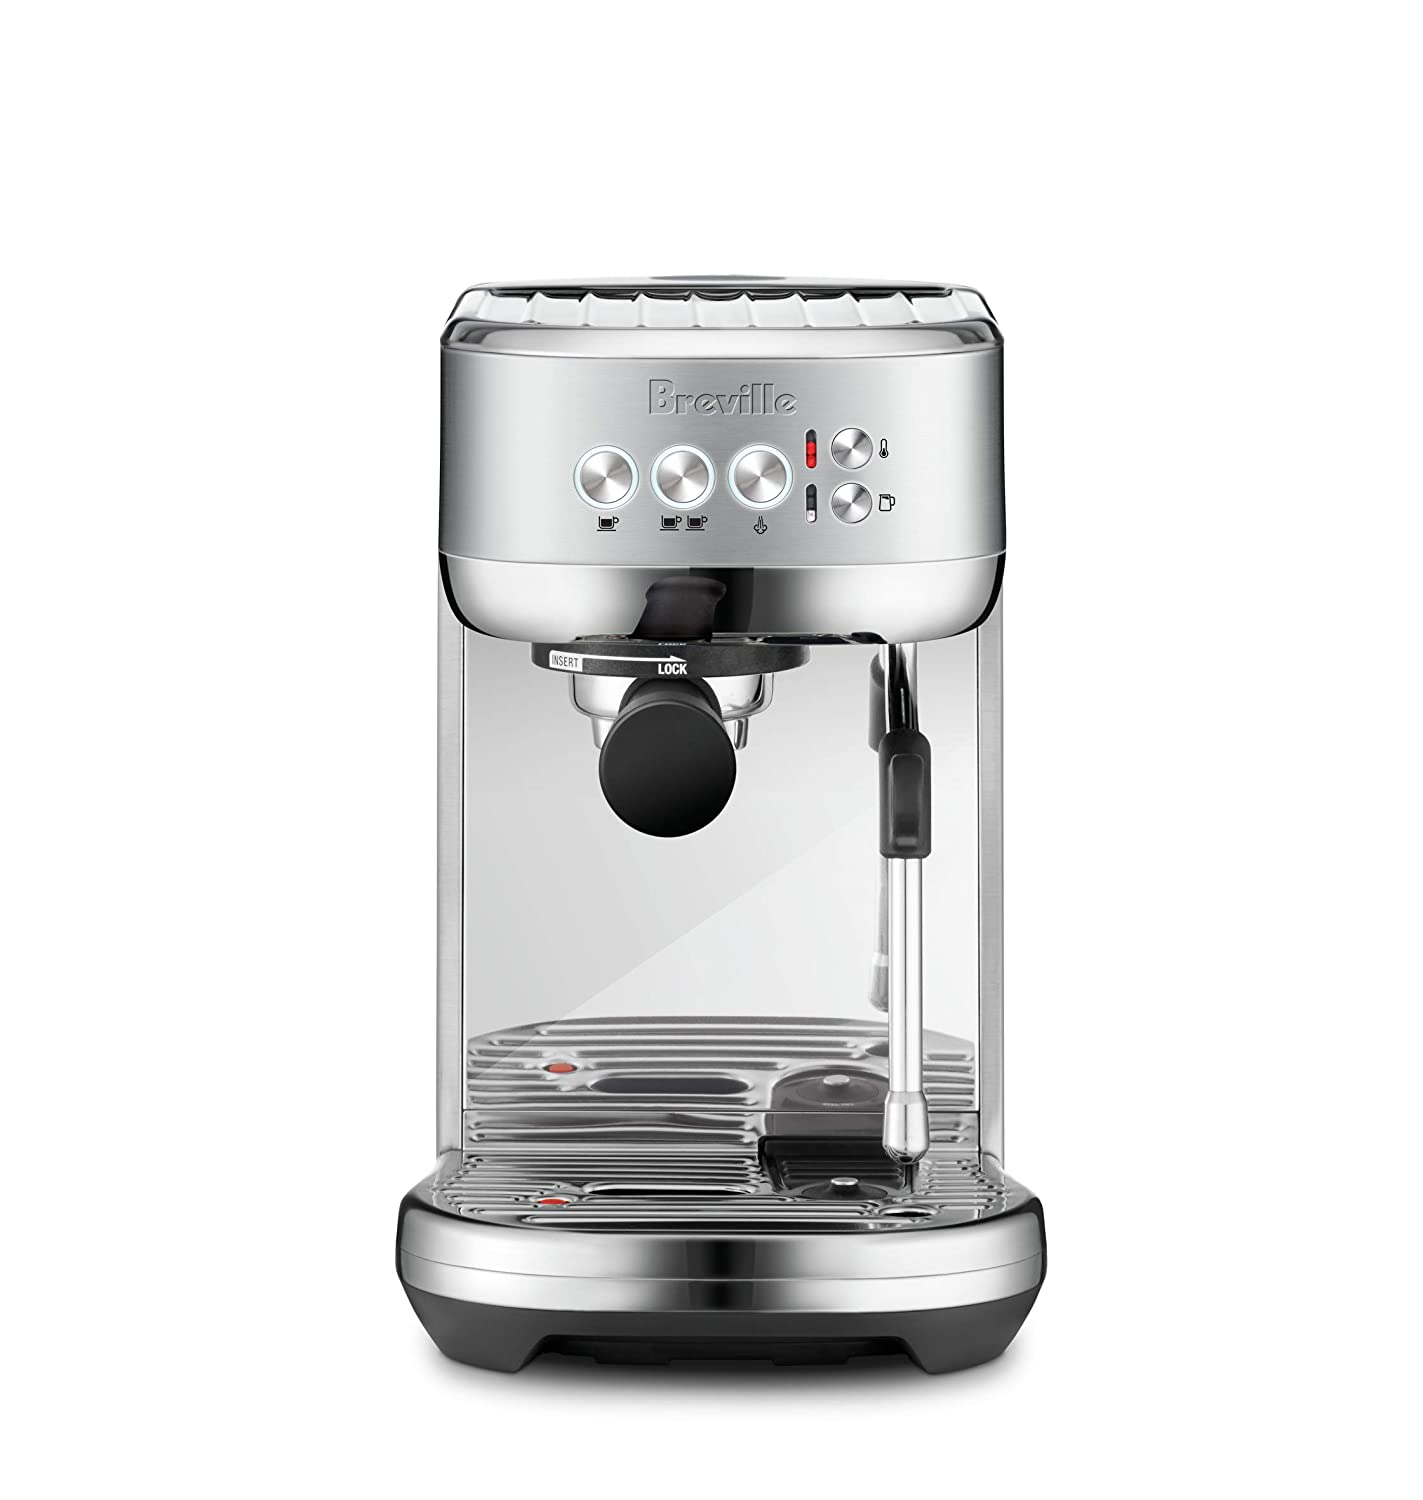 Breville Bambino Plus Compact Espresso Machine Serves Barista-Level Coffee